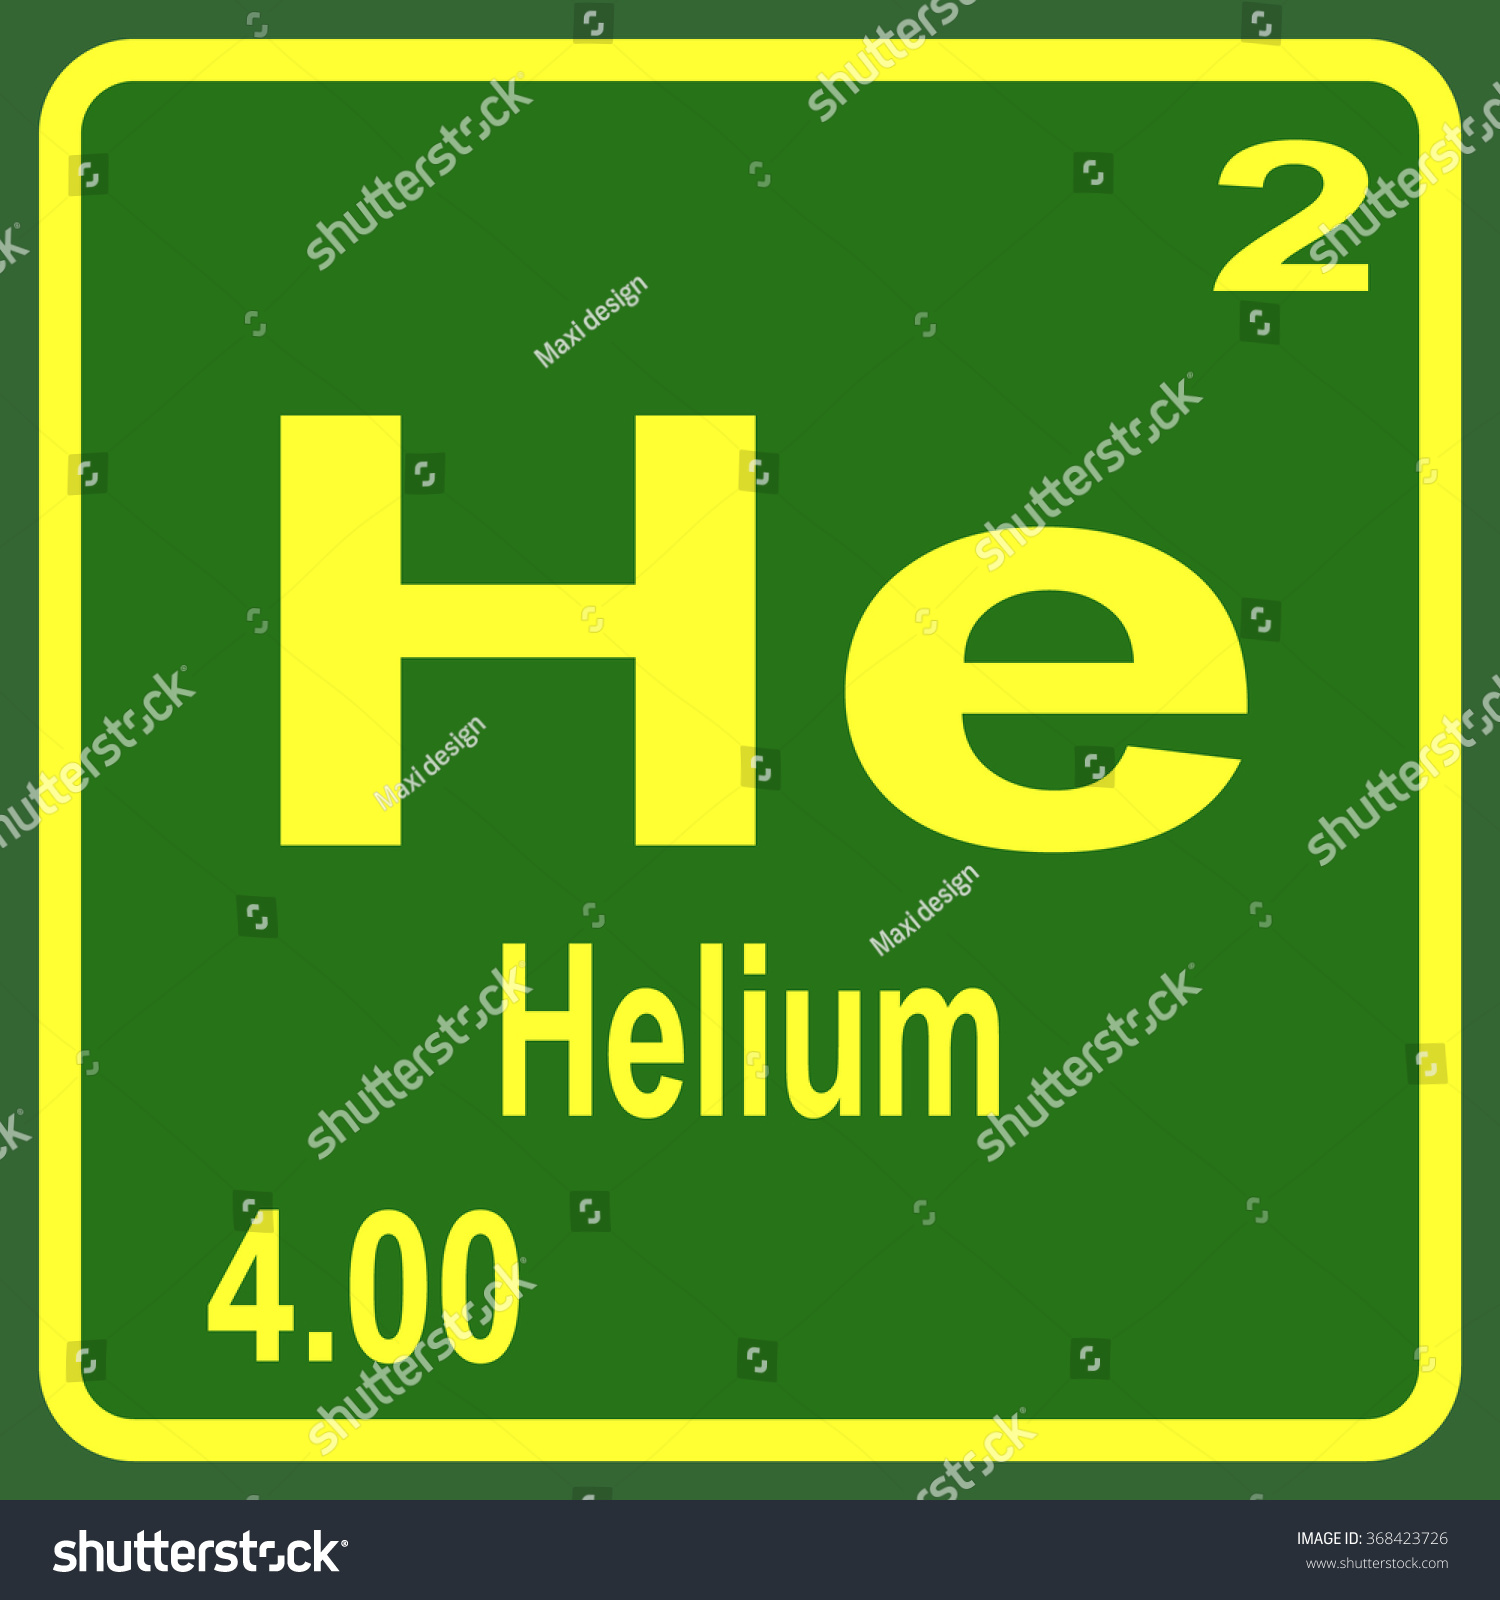 Helium helium periodic table photos of helium periodic table urtaz Choice Image